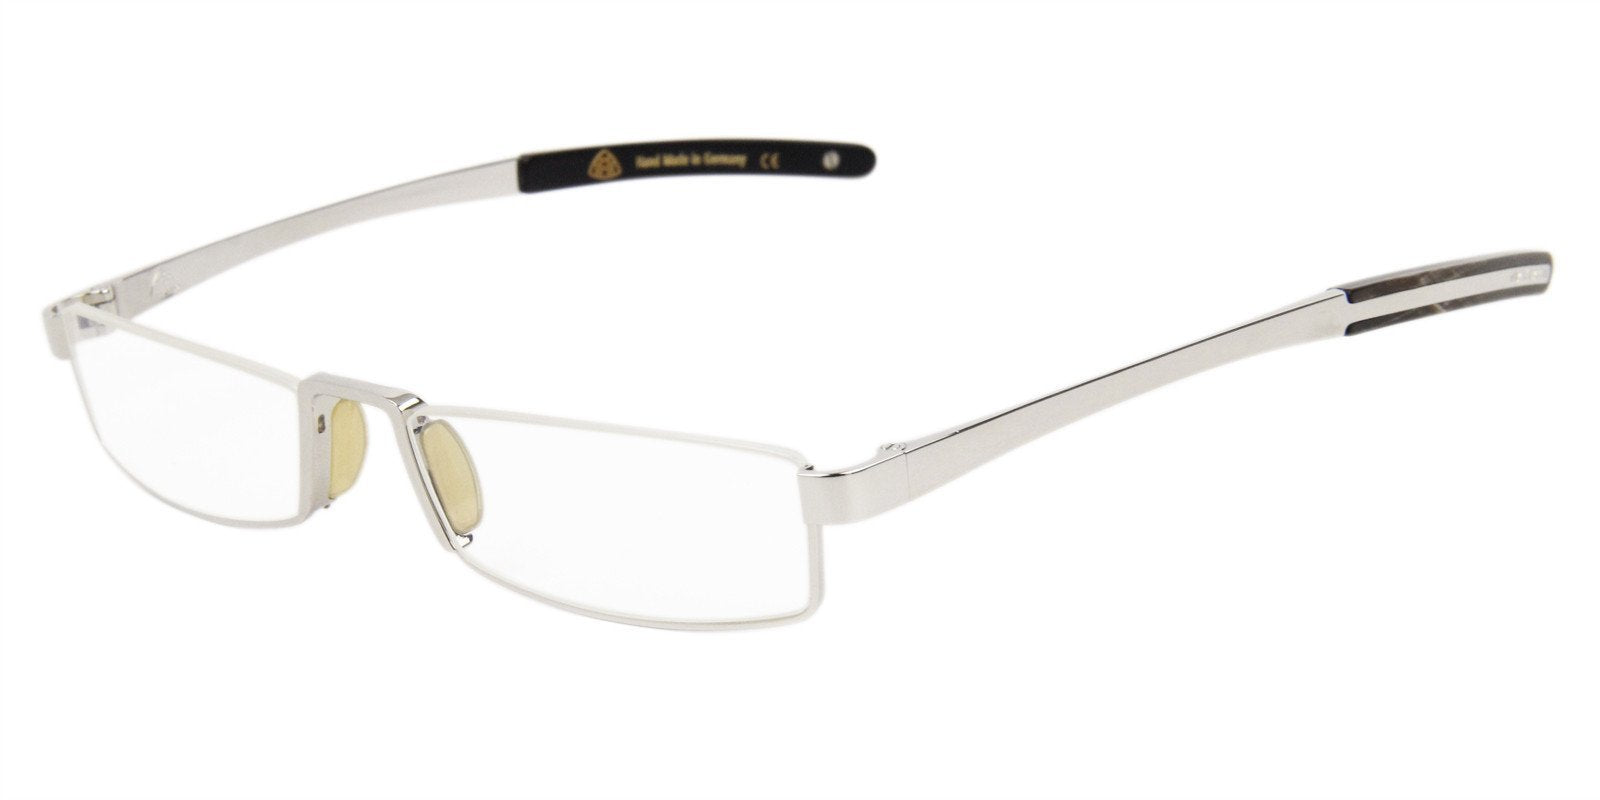 Maybach - The Director I Silver Rectangular Unisex Eyeglasses - 53mm-Eyeglasses-Designer Eyes